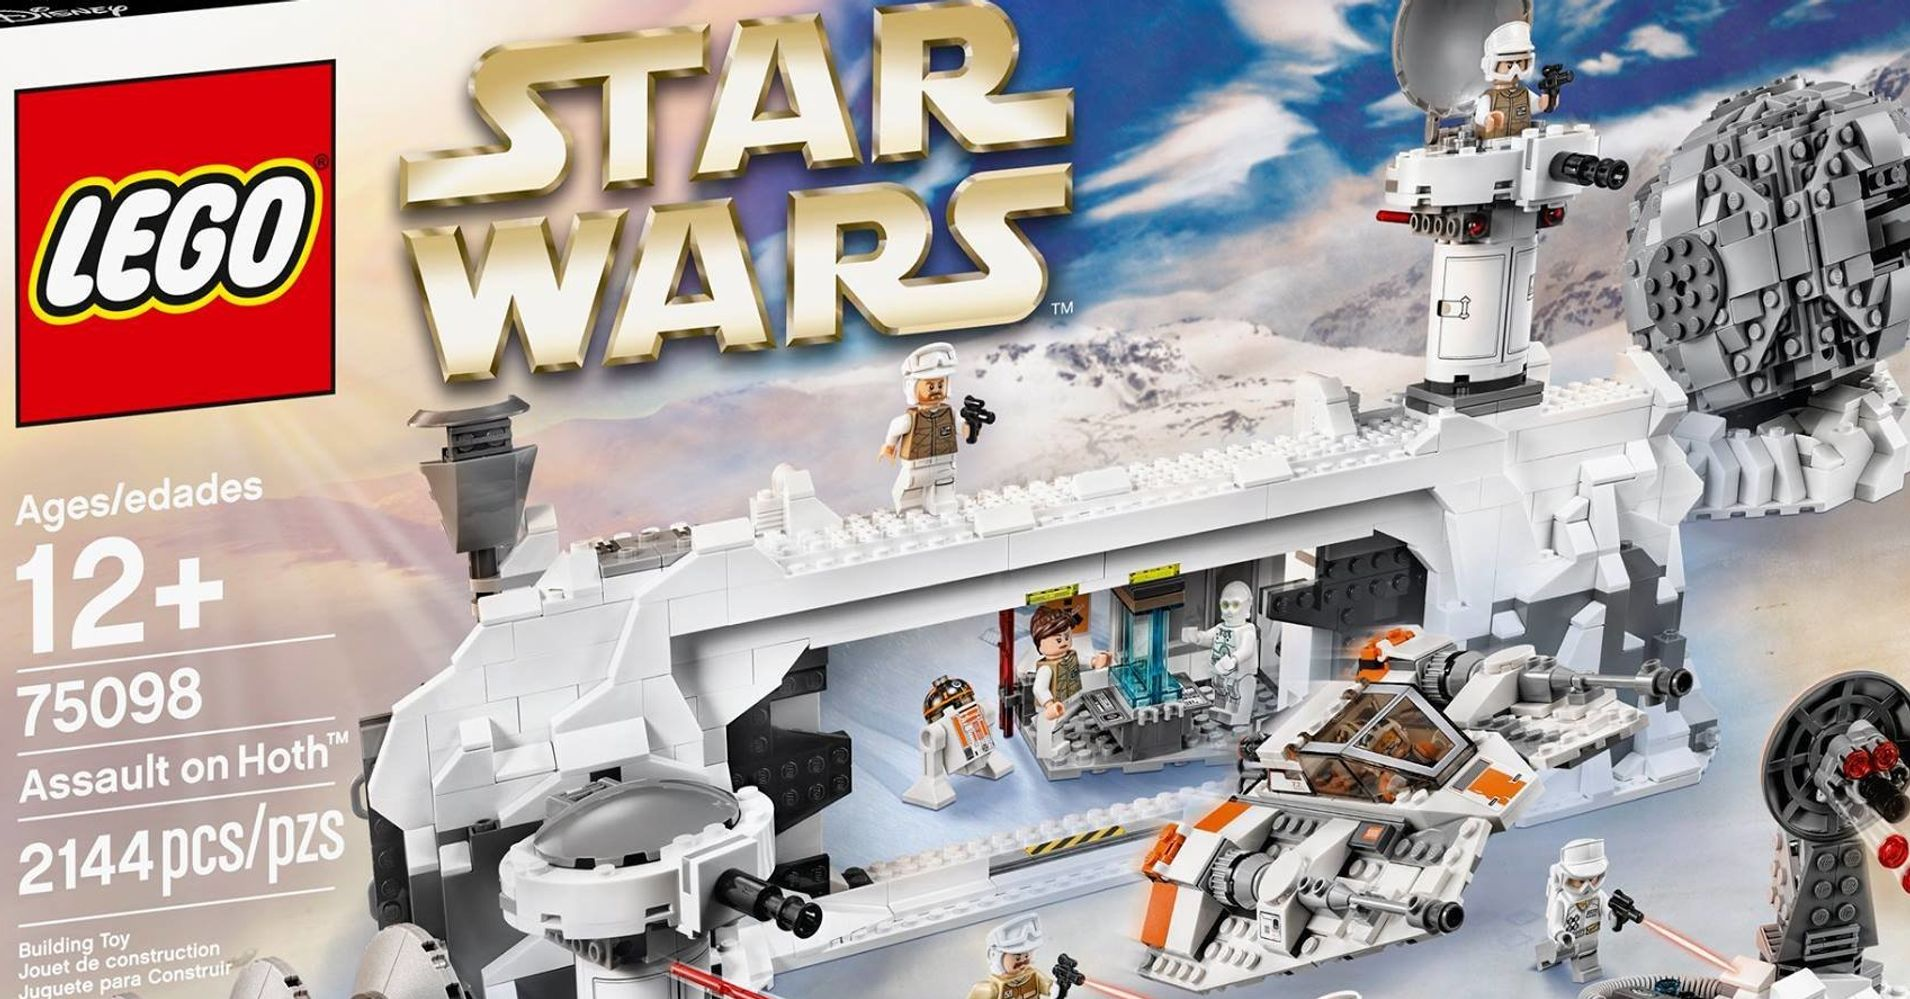 This New Lego Set Turns Your Home Into An Old School Star Wars Film 75098 Assault On Hoth Huffpost Life